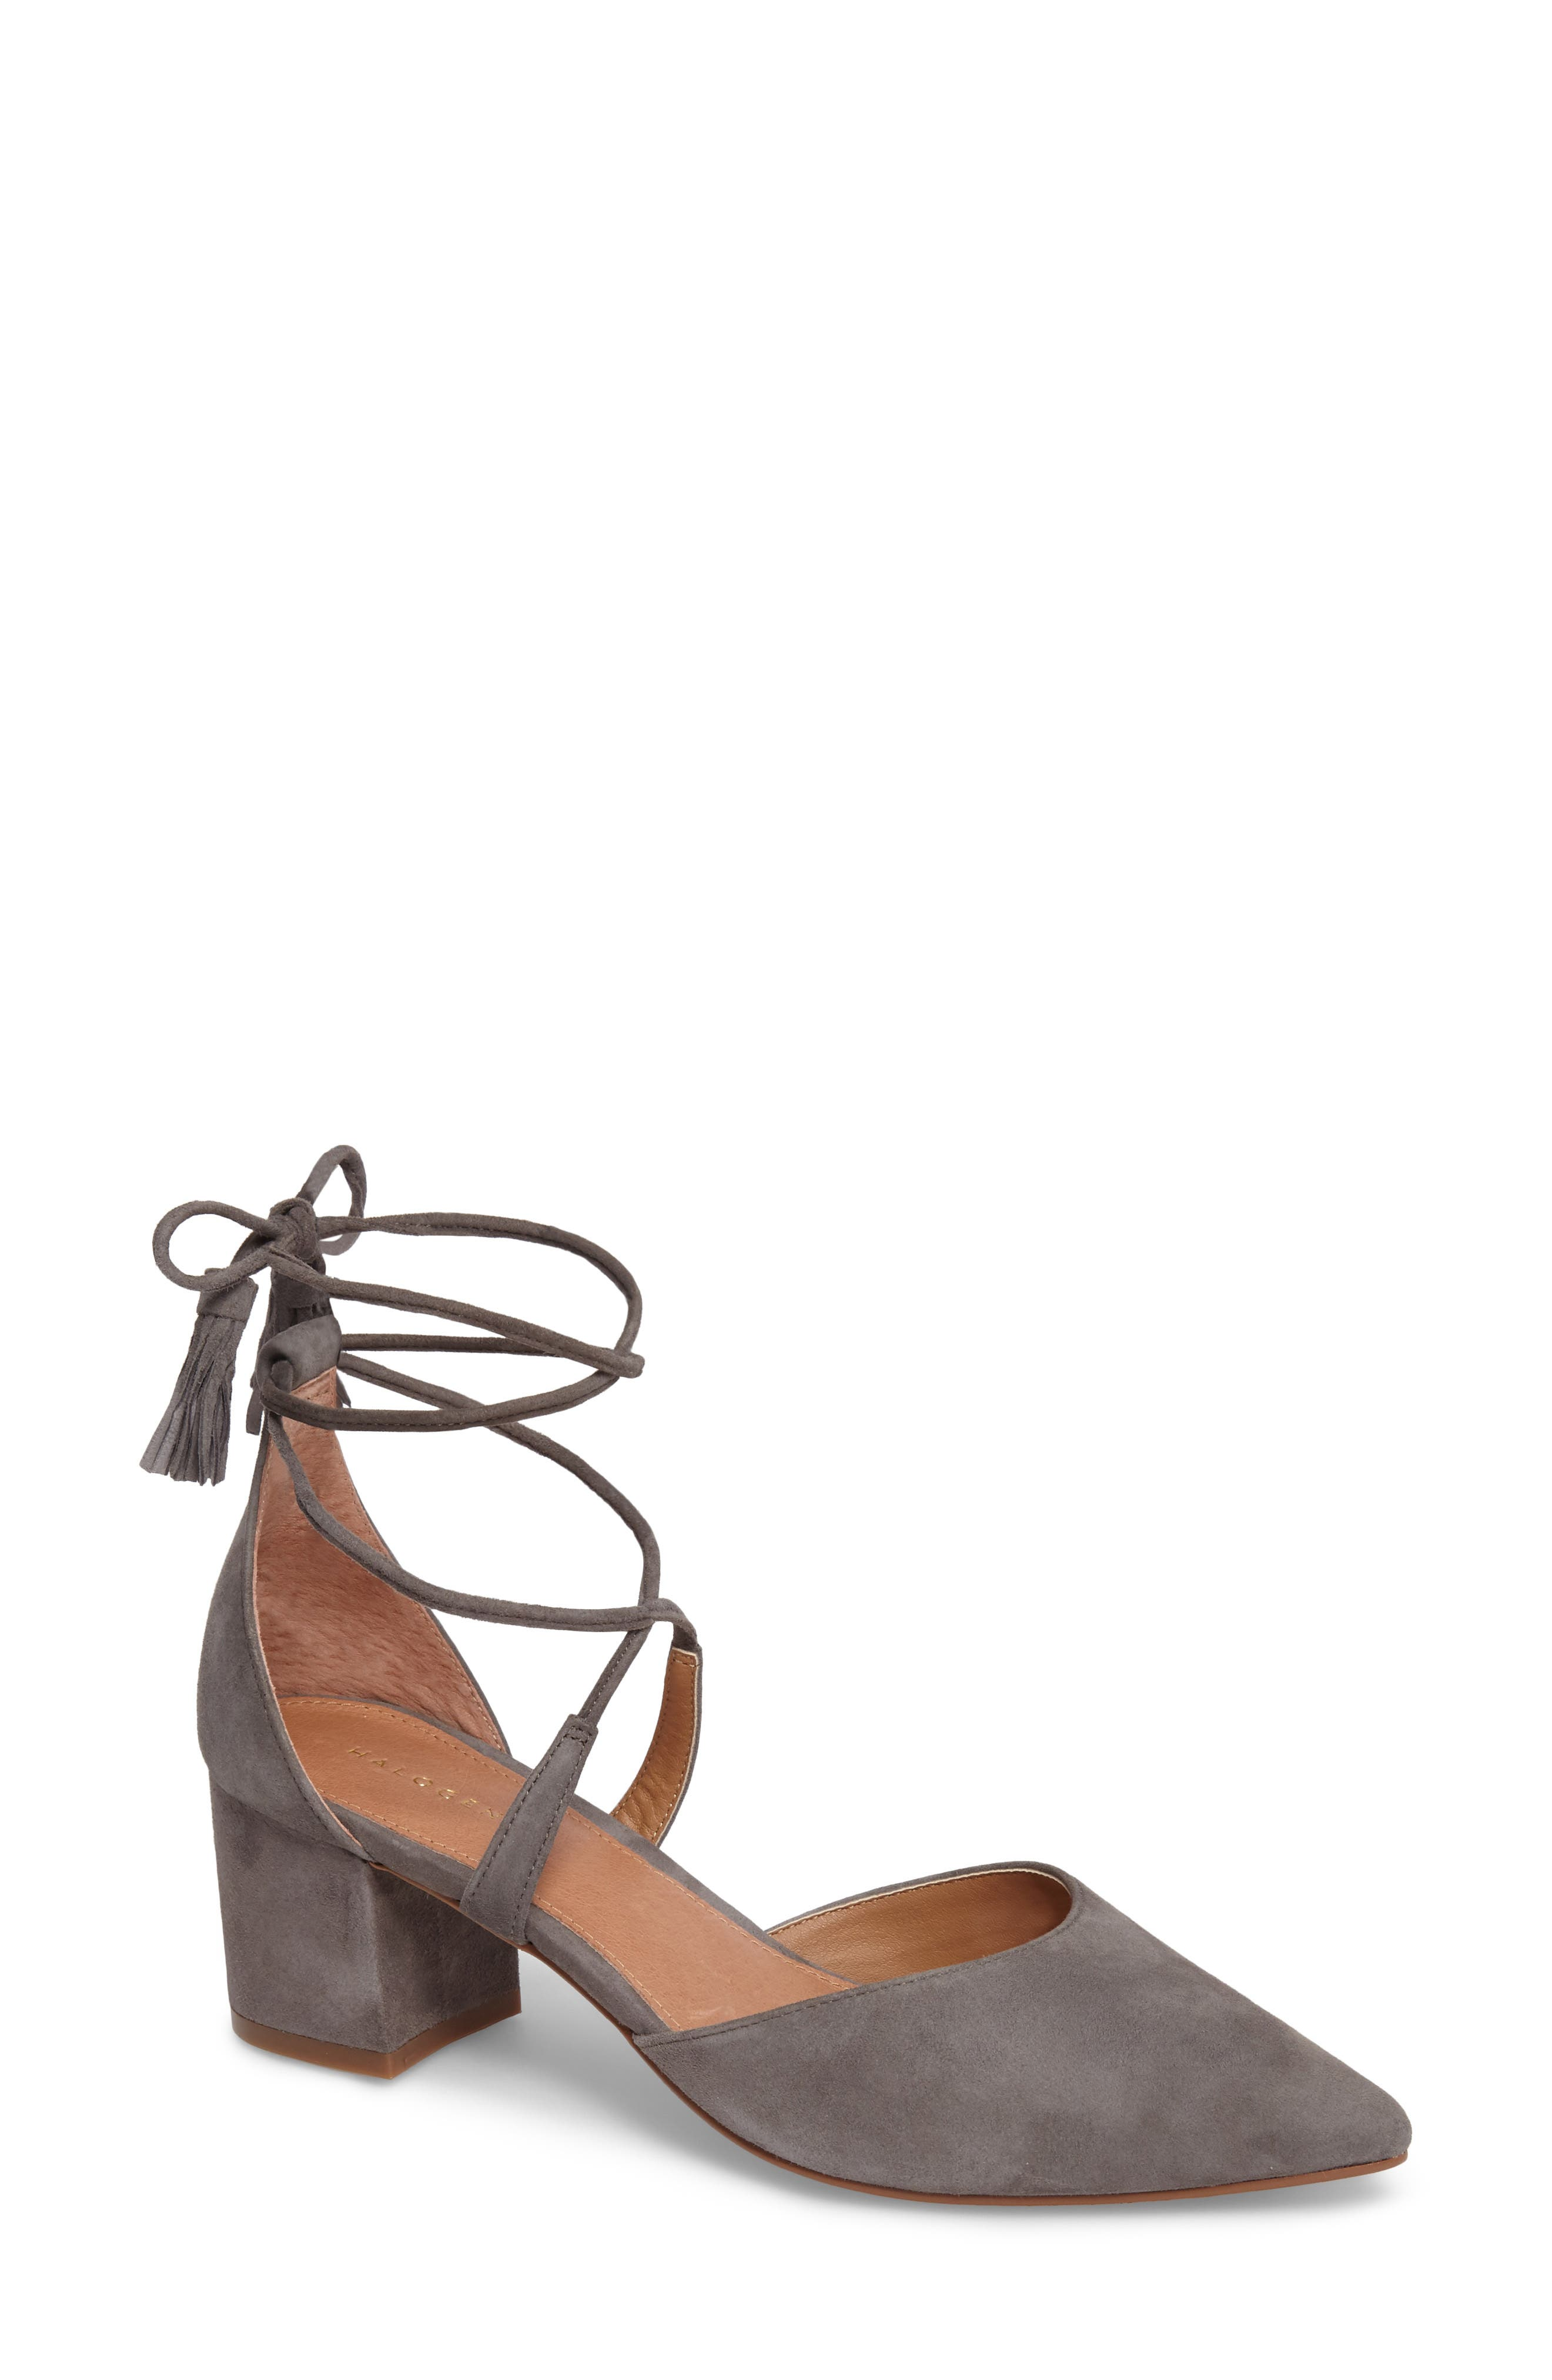 Alternate Image 1 Selected - Halogen® Iris Lace-Up d'Orsay Pump (Women)